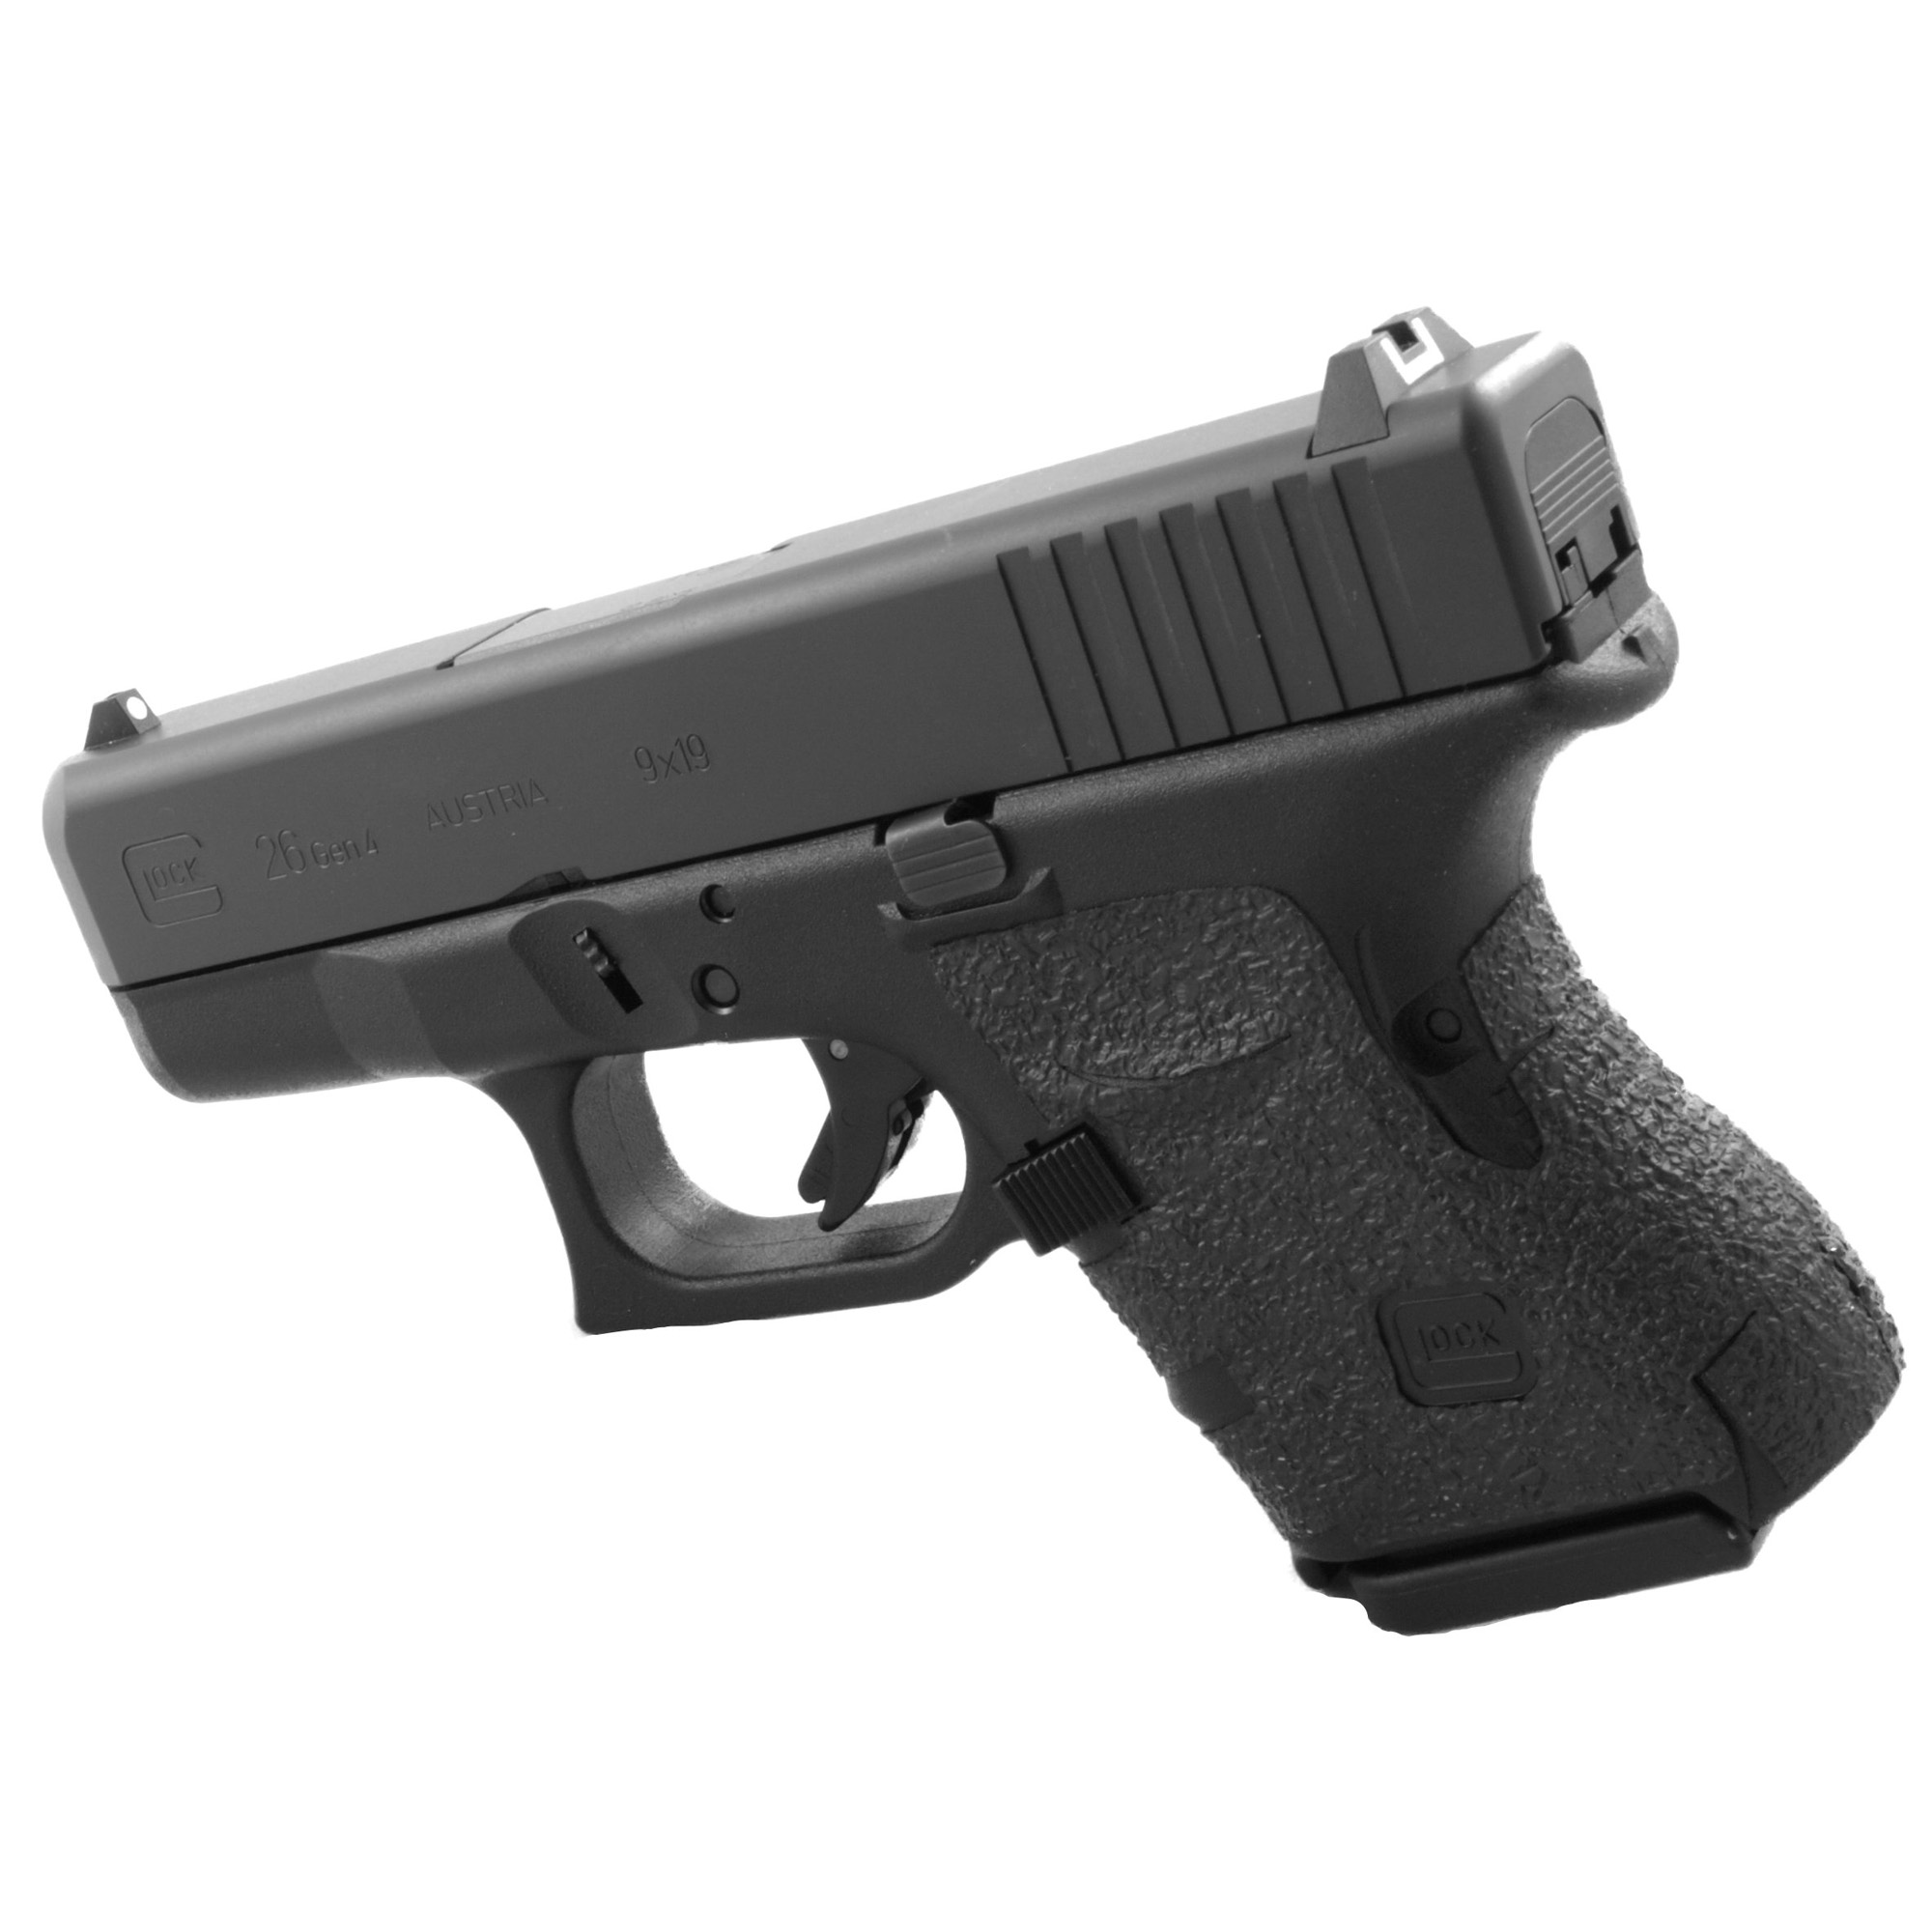 """TALON Grips for Glock Gen 4 Models 26"""" 27"""" 28"""" 33"""" and 39 with No Backstrap. This rear wrap grip is in the rubber texture. This grip provides full coverage on the side panels including above the thumb rest"""" ample coverage on the backstrap"""" and two finger wraps for the finger grooves under the trigger guard. This grip has a logo cutout for the Glock emblem on the left side of the handle. This grip sticks extremely well even with the Rough Textured Frame (RTF)."""